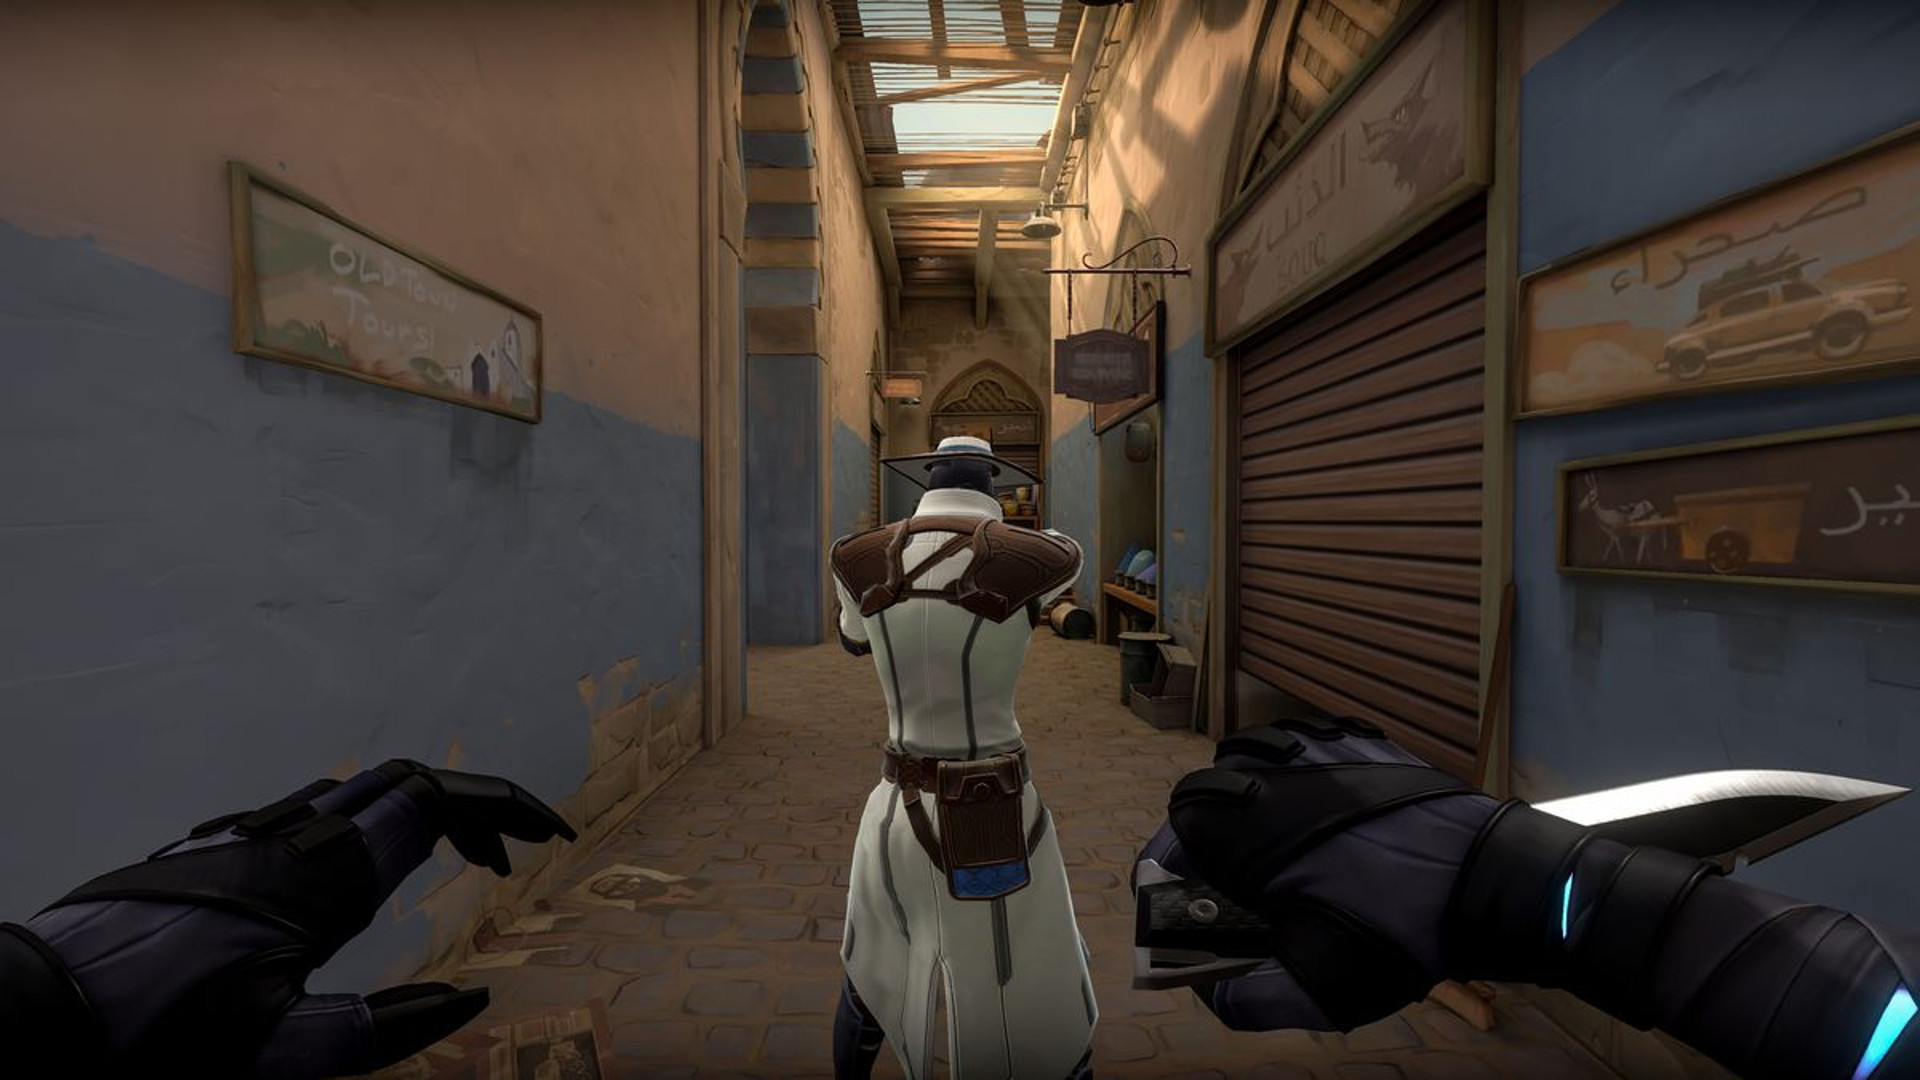 Player holding knife in Valorant.